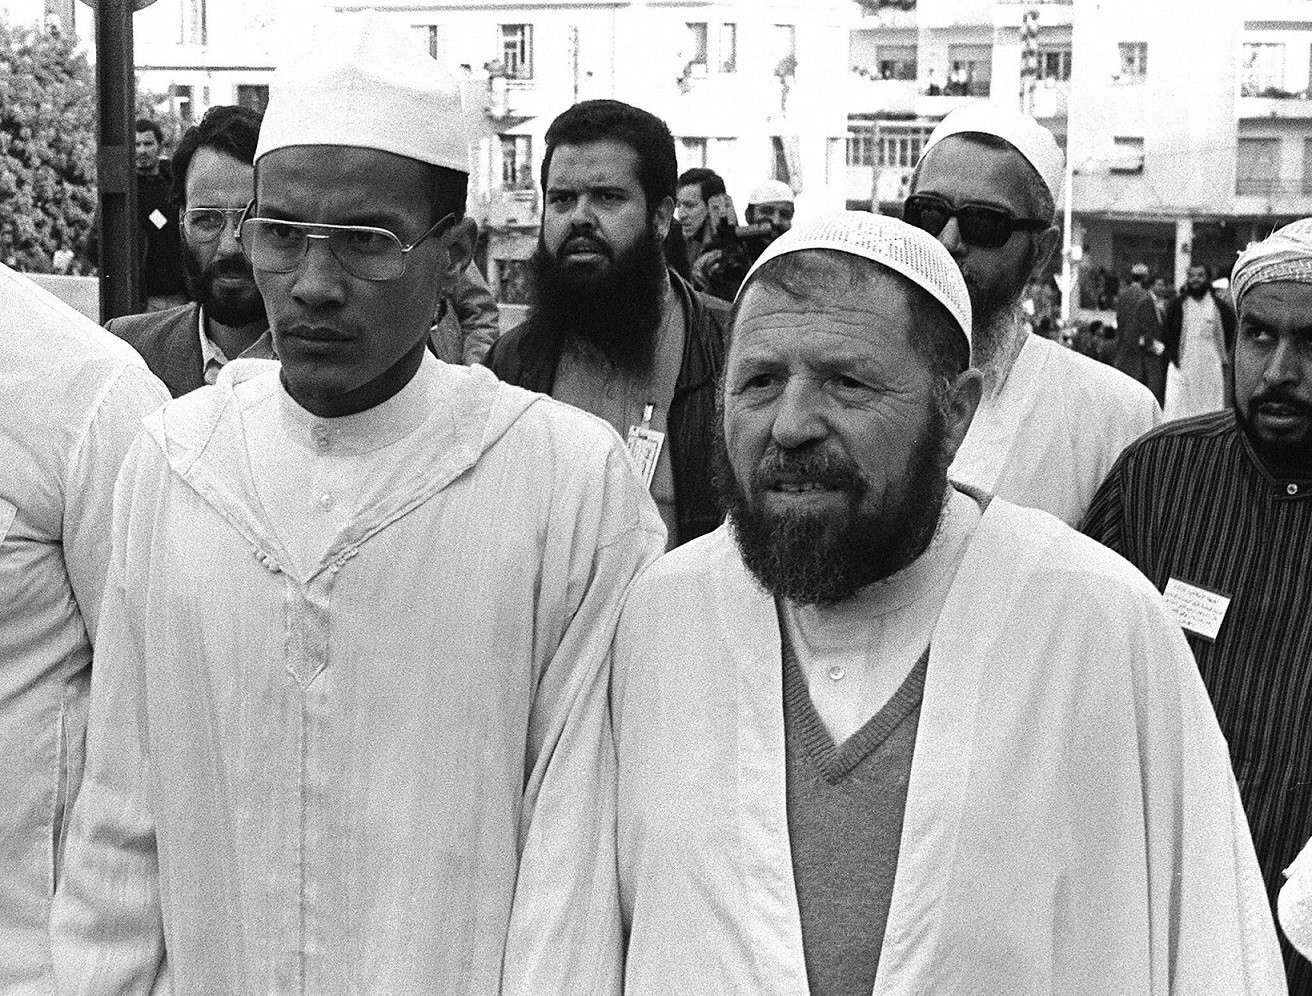 The historic leader of the Islamic Salvation Front (FIS), Abbasi Madani (R), stands next to Ali Belhadj, the movement's number two, in Algiers in May 1991 (AFP)